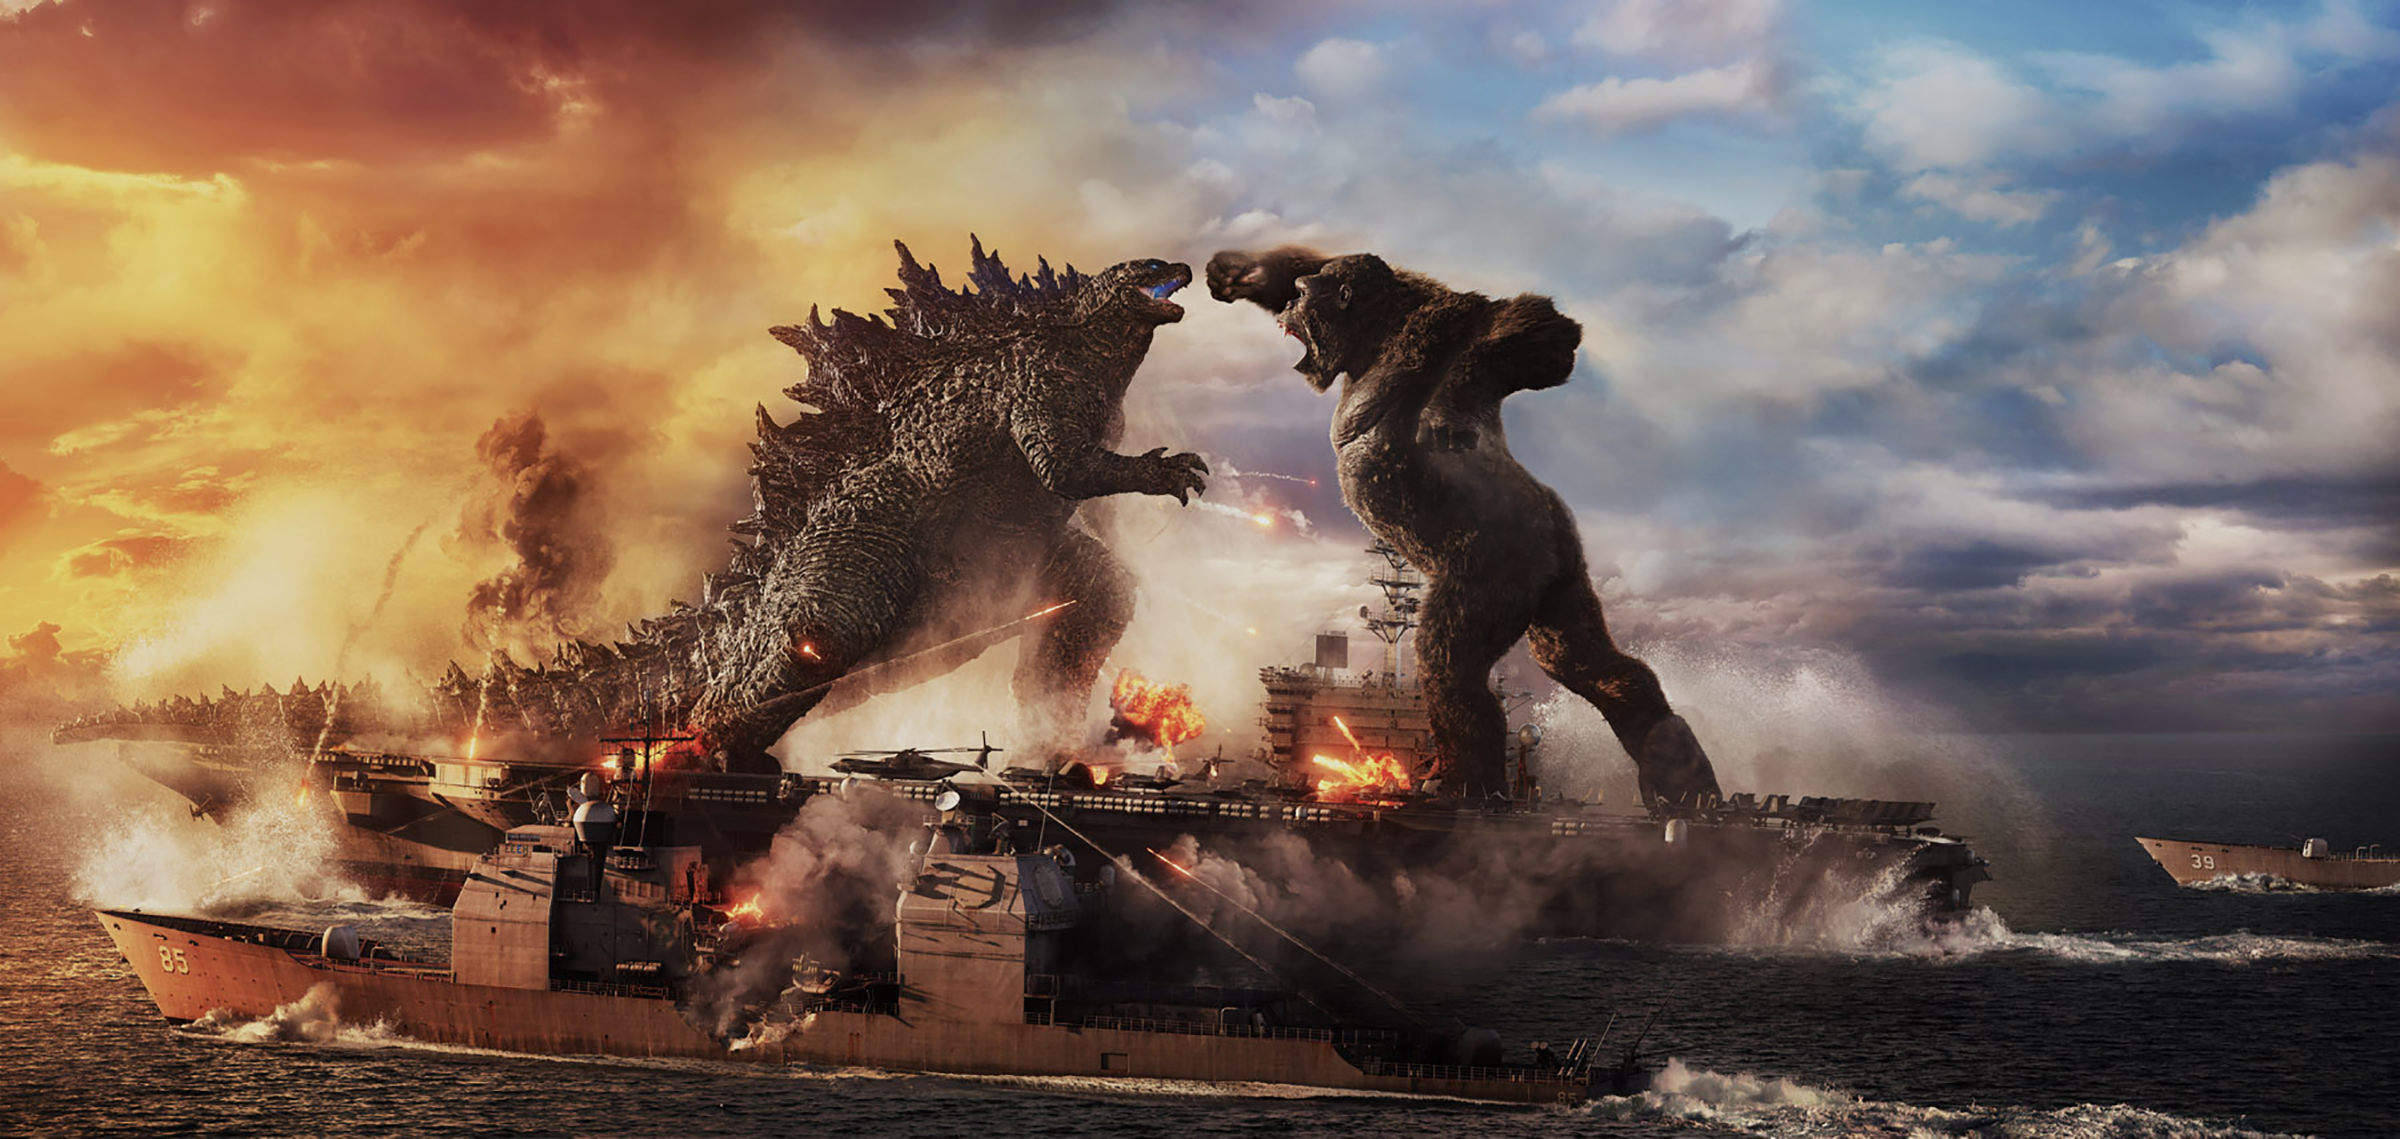 Godzilla Vs Kong Poised For Hollywood's Best Overseas Bow Of Covid Era – Deadline